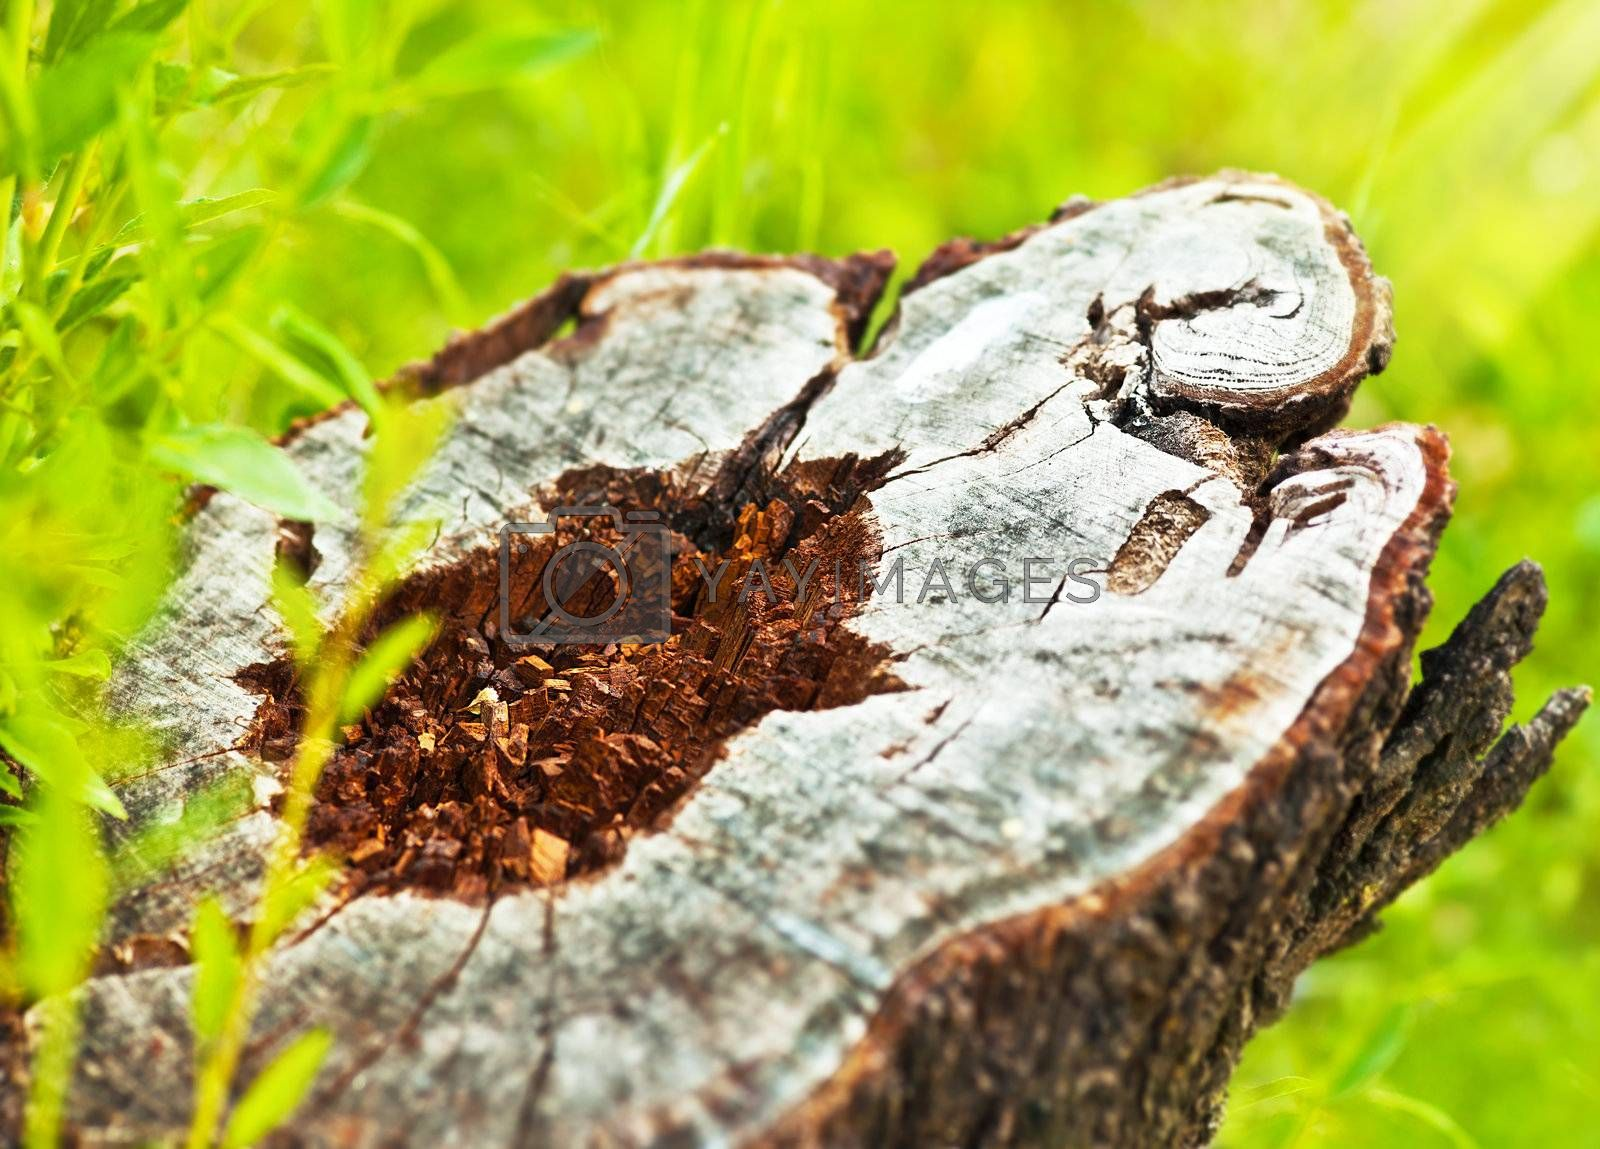 Deforestation, dead tree stump, save nature and protect earth, conceptual image of environmental damage and forest pollution